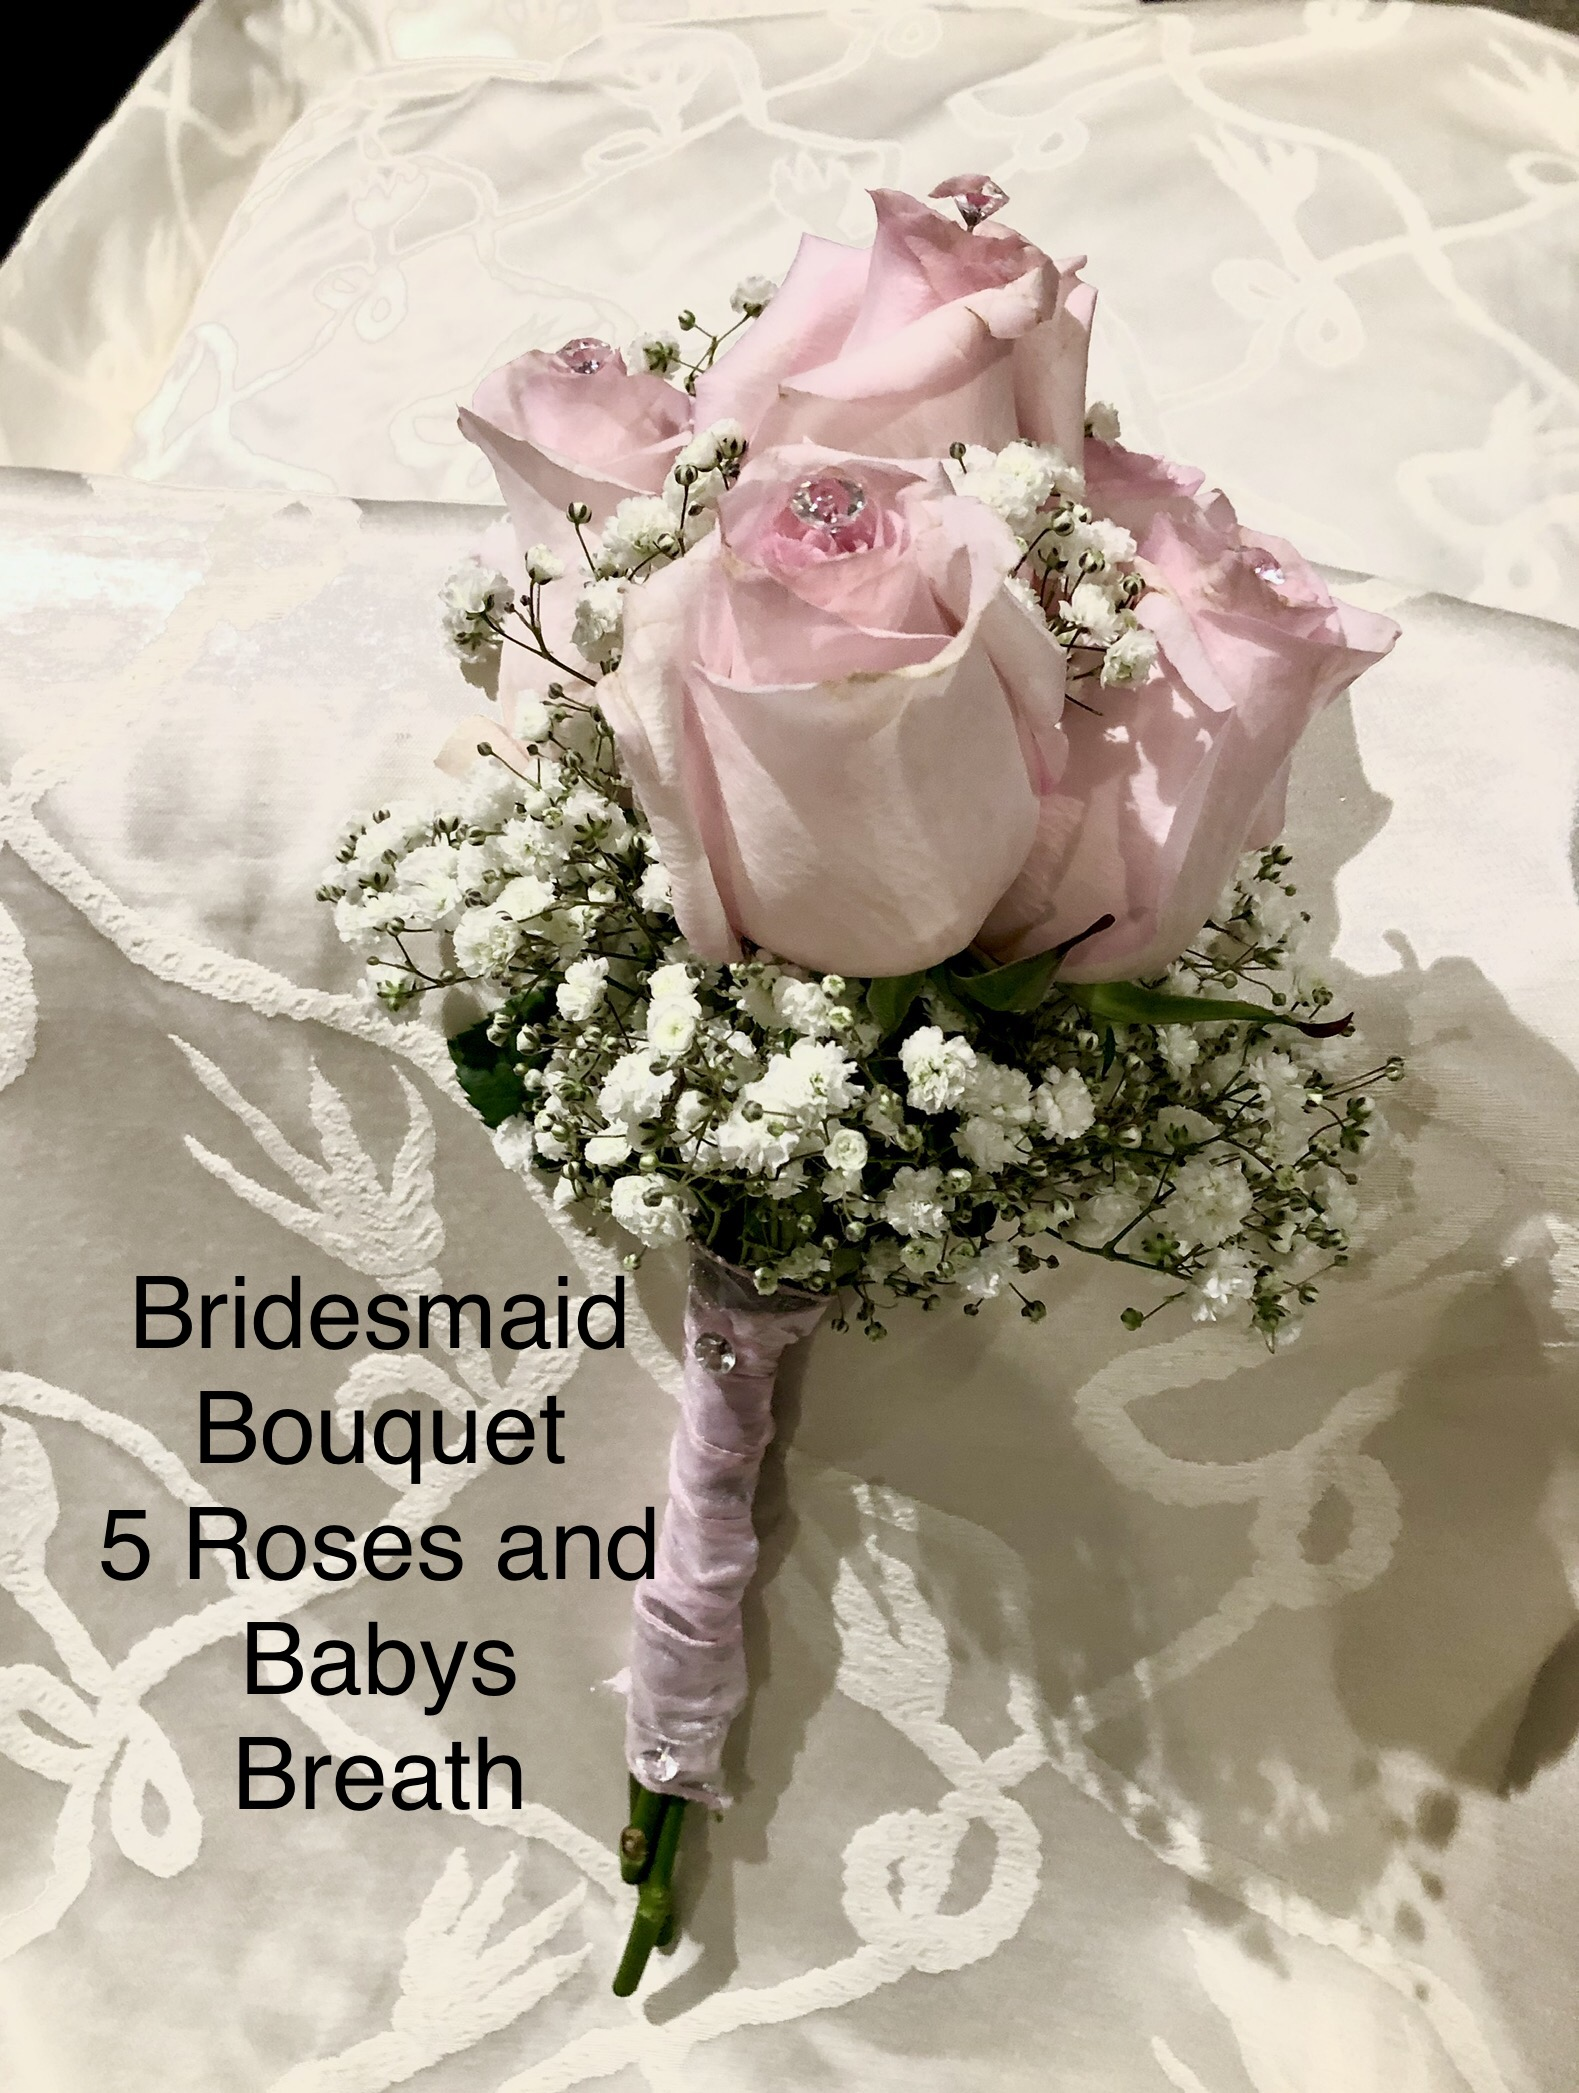 Bridesmaid Bouquet 5 Roses and Babies Breath